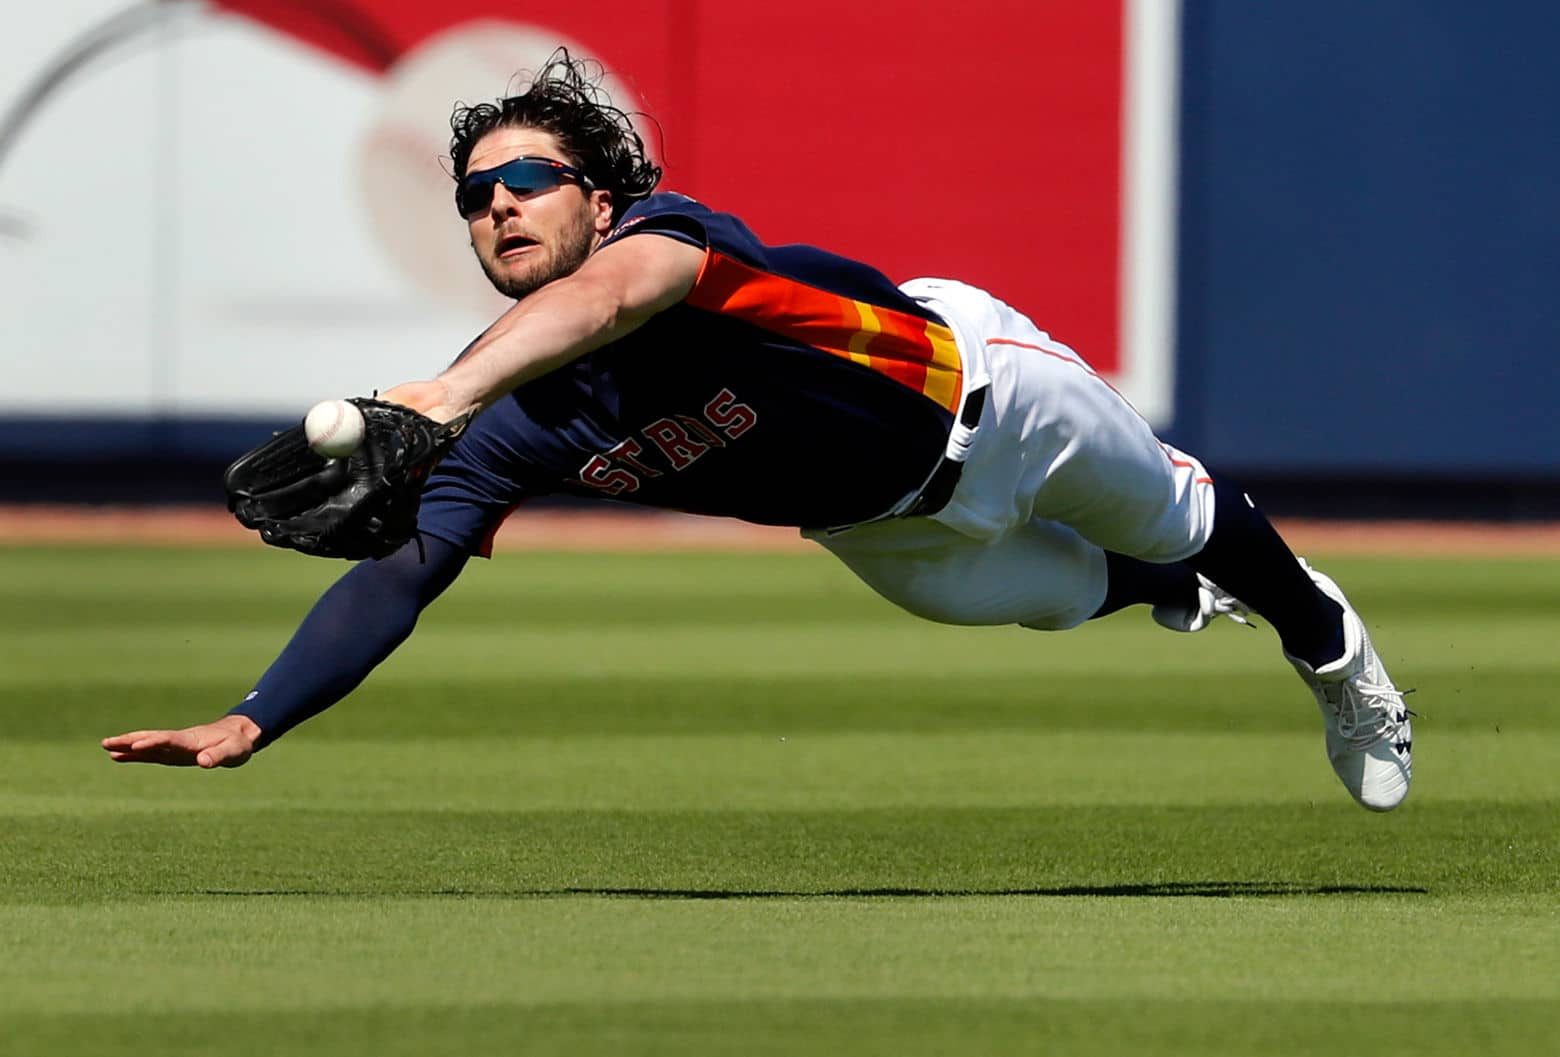 Houston Astros center fielder Jake Marisnick dives and catches a ball hit by Washington Nationals' Matt Adams to end the top of the first inning of an exhibition spring baseball game Friday.  (AP Photo/Jeff Roberson)